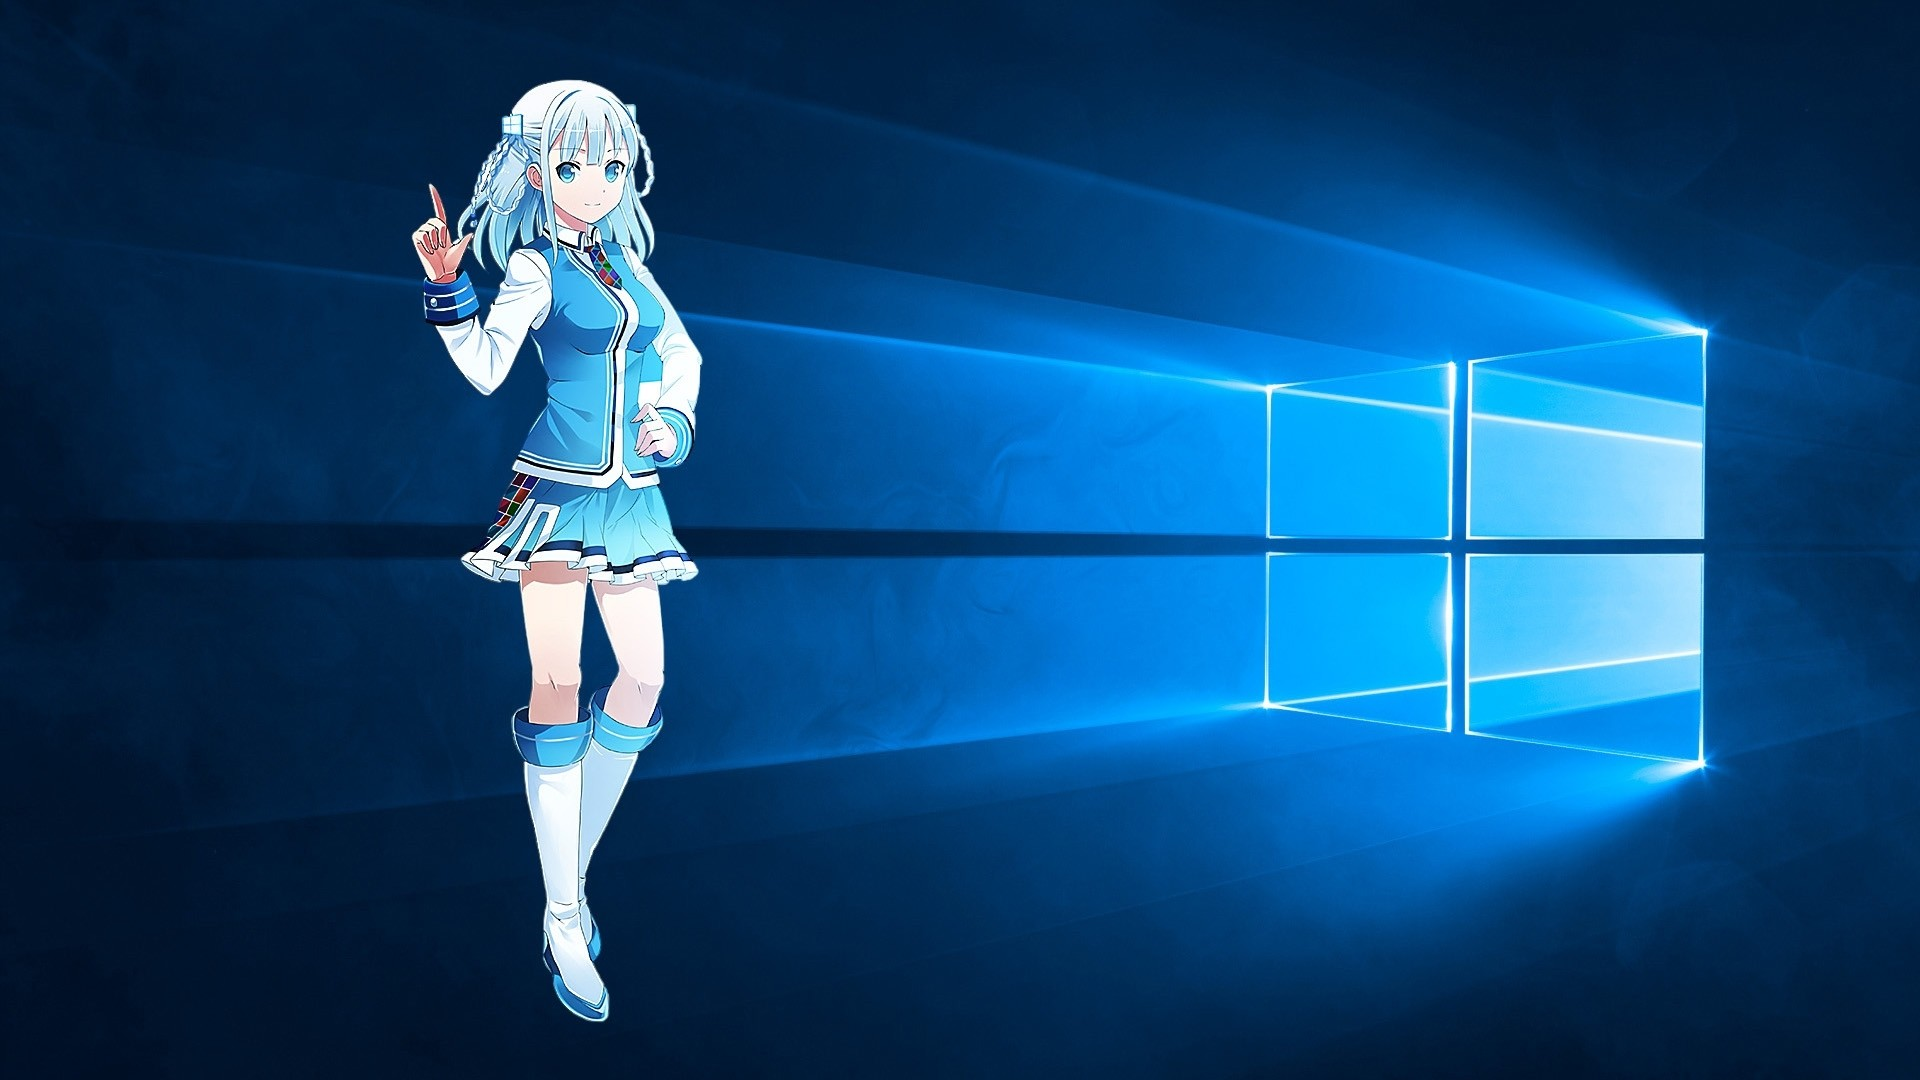 Res: 1920x1080, Best of Hd Anime Wallpapers for Windows 10 Free - Windows 10 Microsoft Anime  Girl Wallpaper